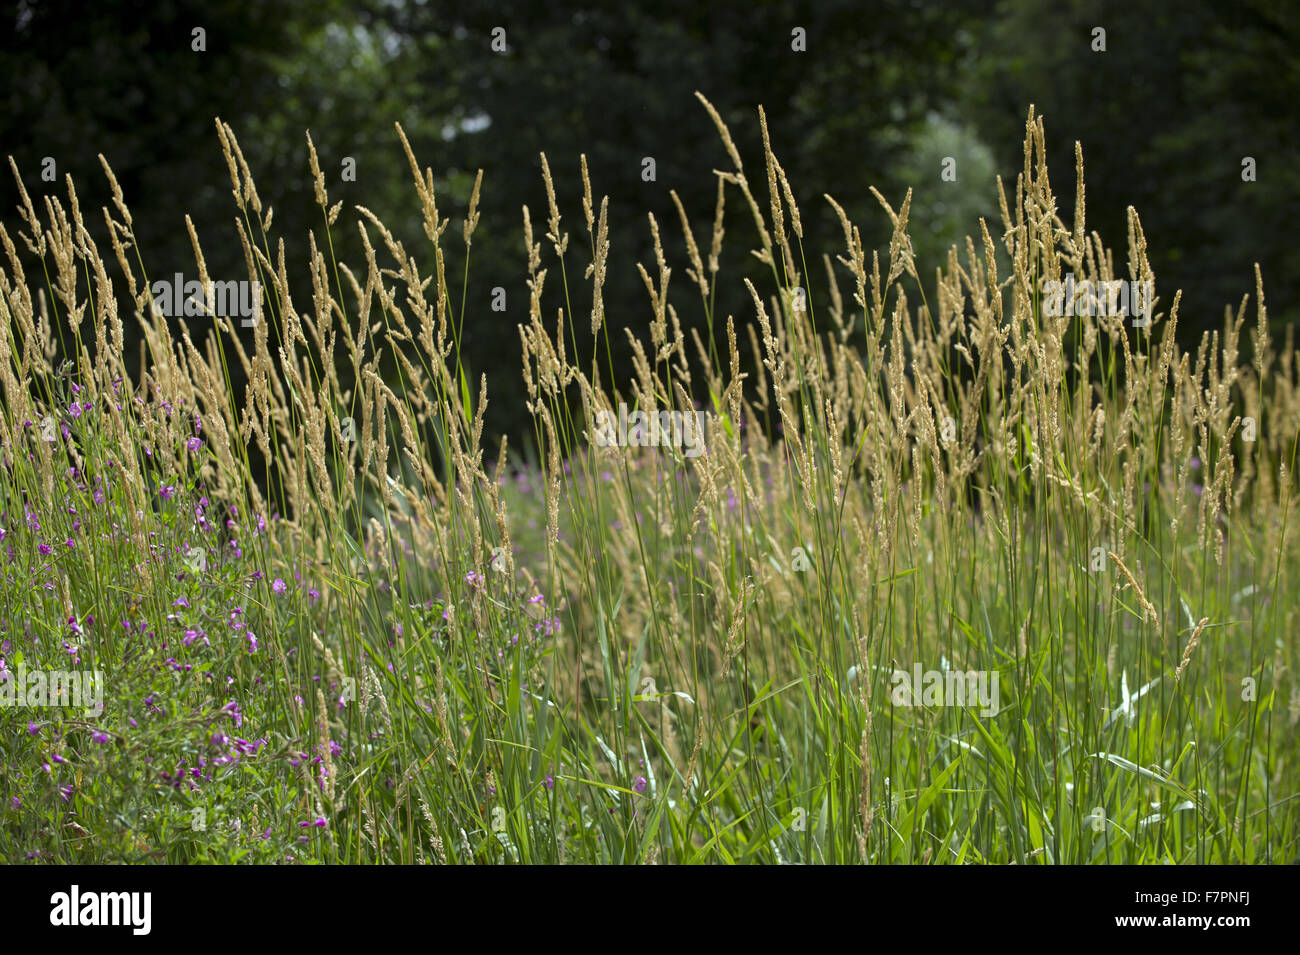 Grasses growing in the grounds of Morden Hall Park, London. Stock Photo